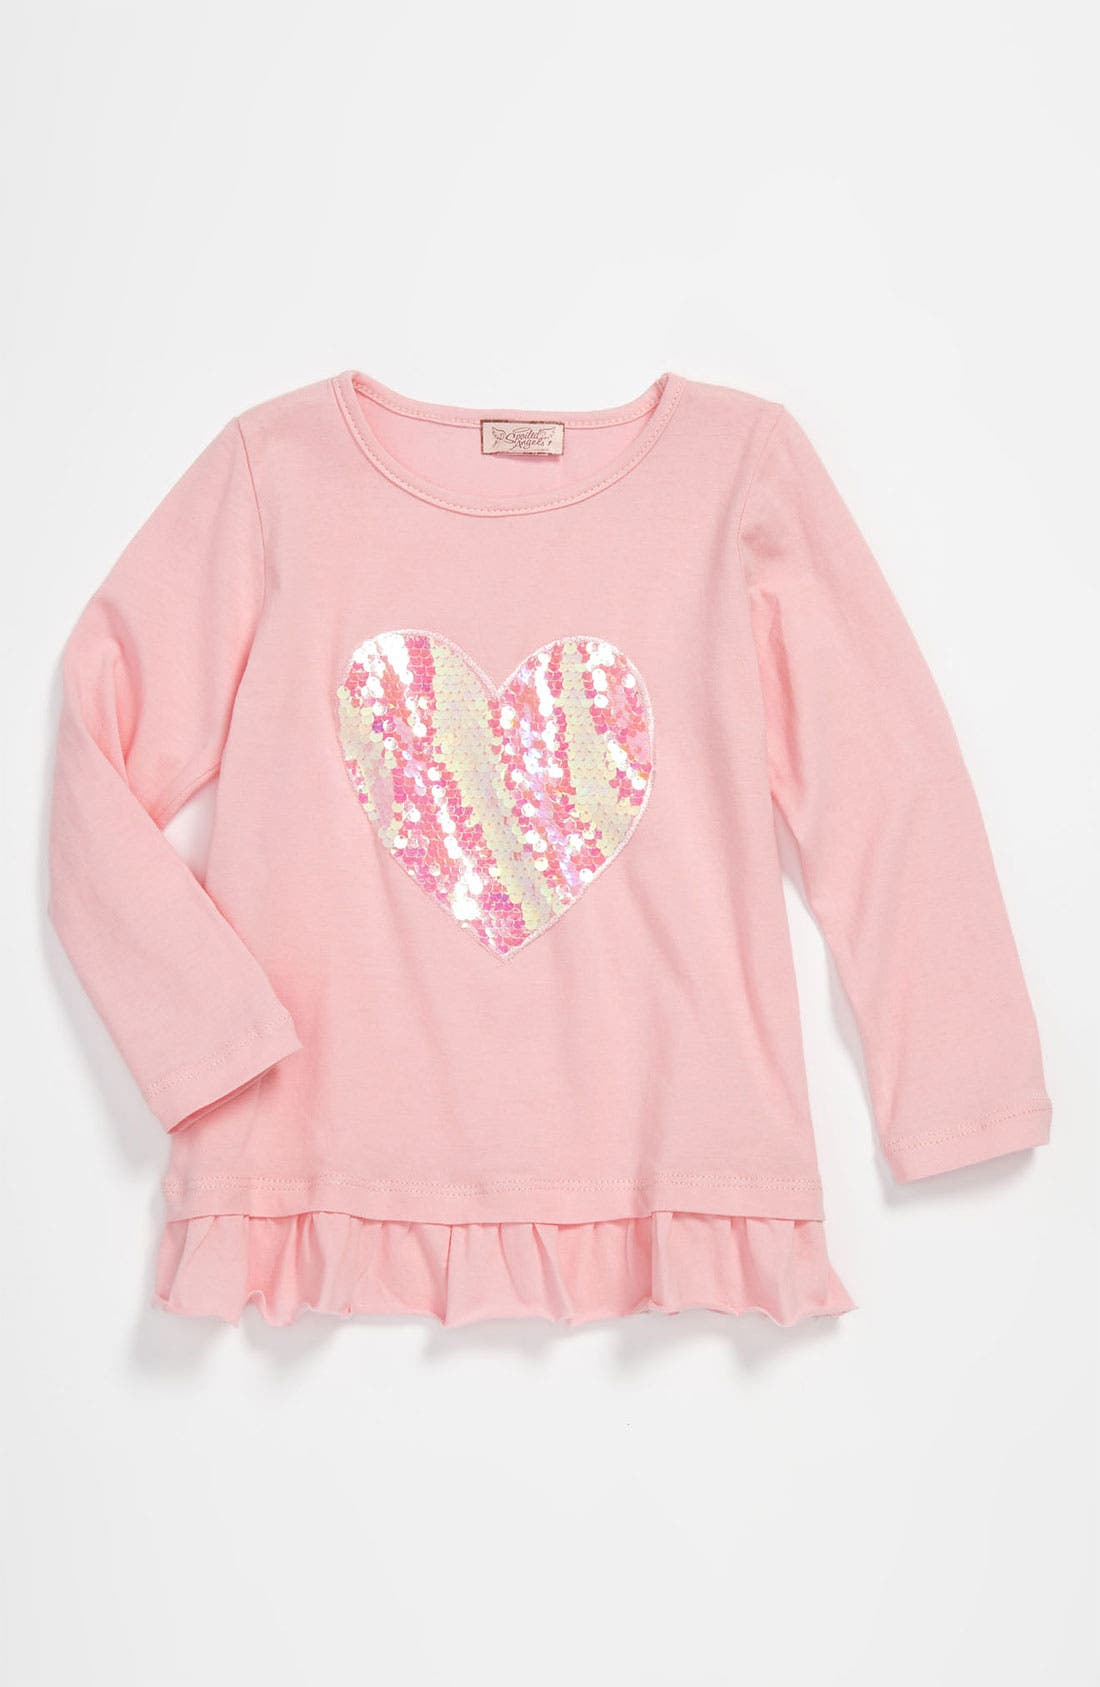 Main Image - Spoiled Angels Paillette Heart Top (Toddler)